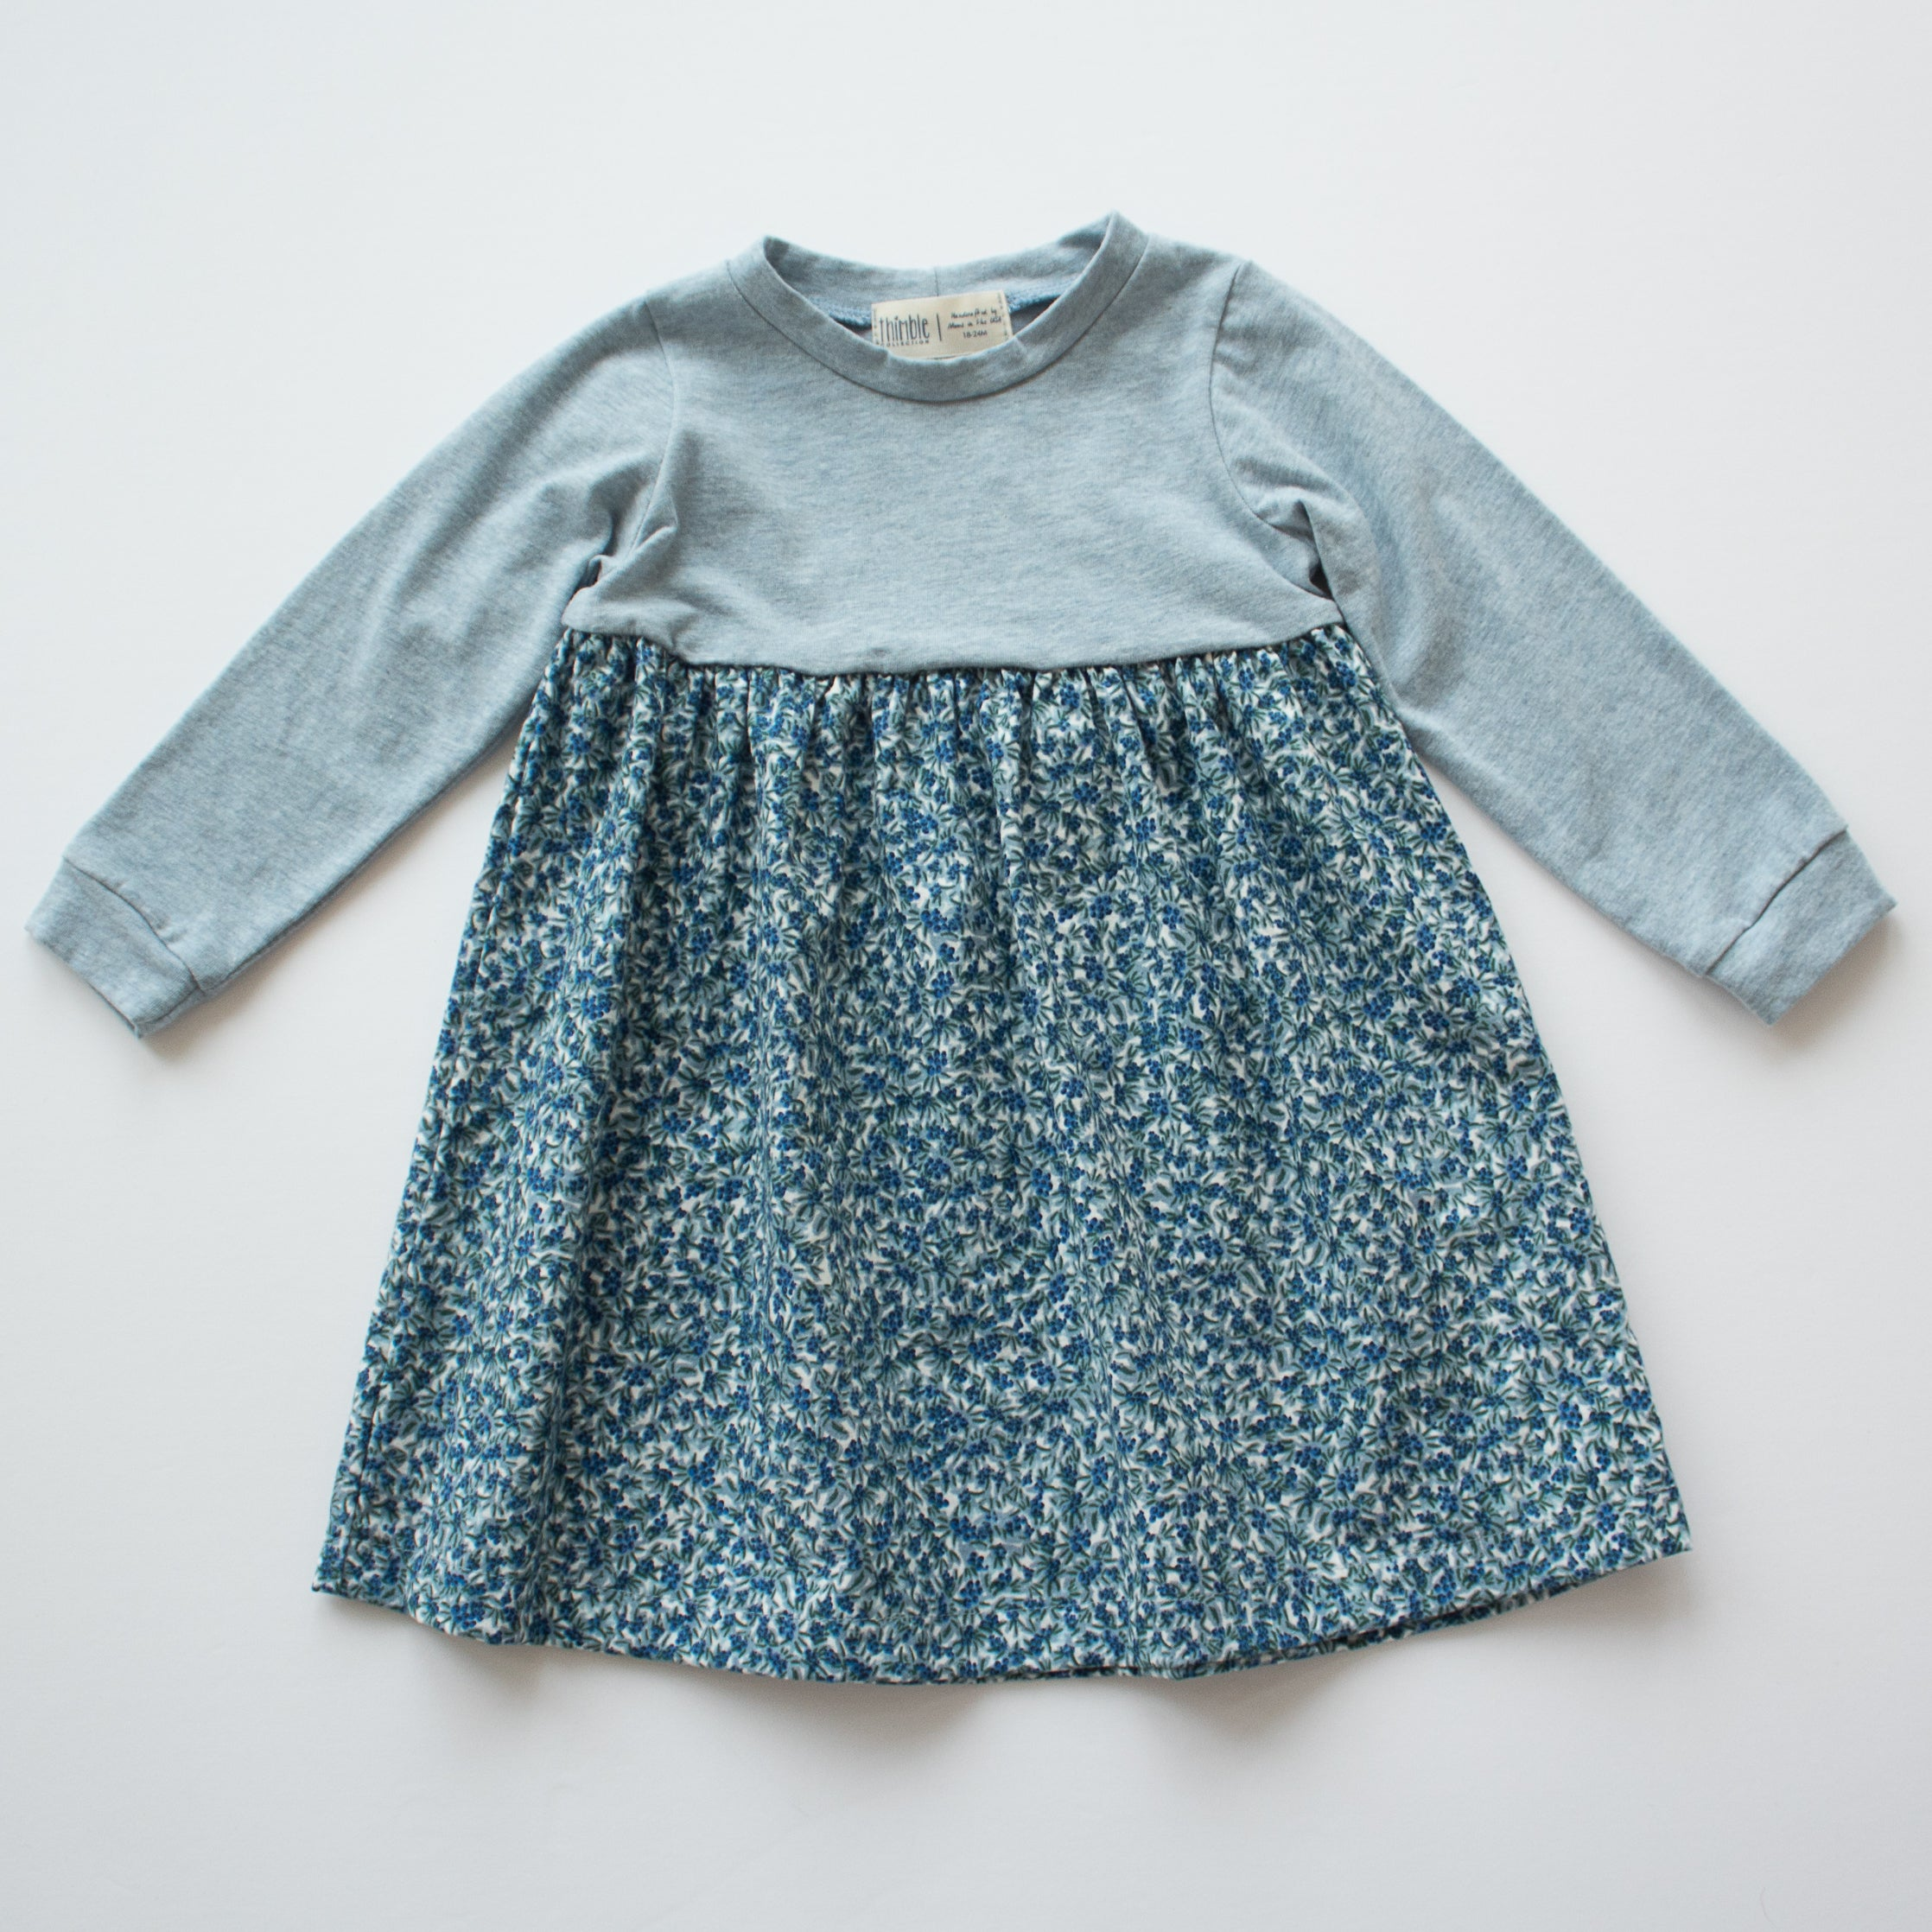 Playground Dress in Blueberry